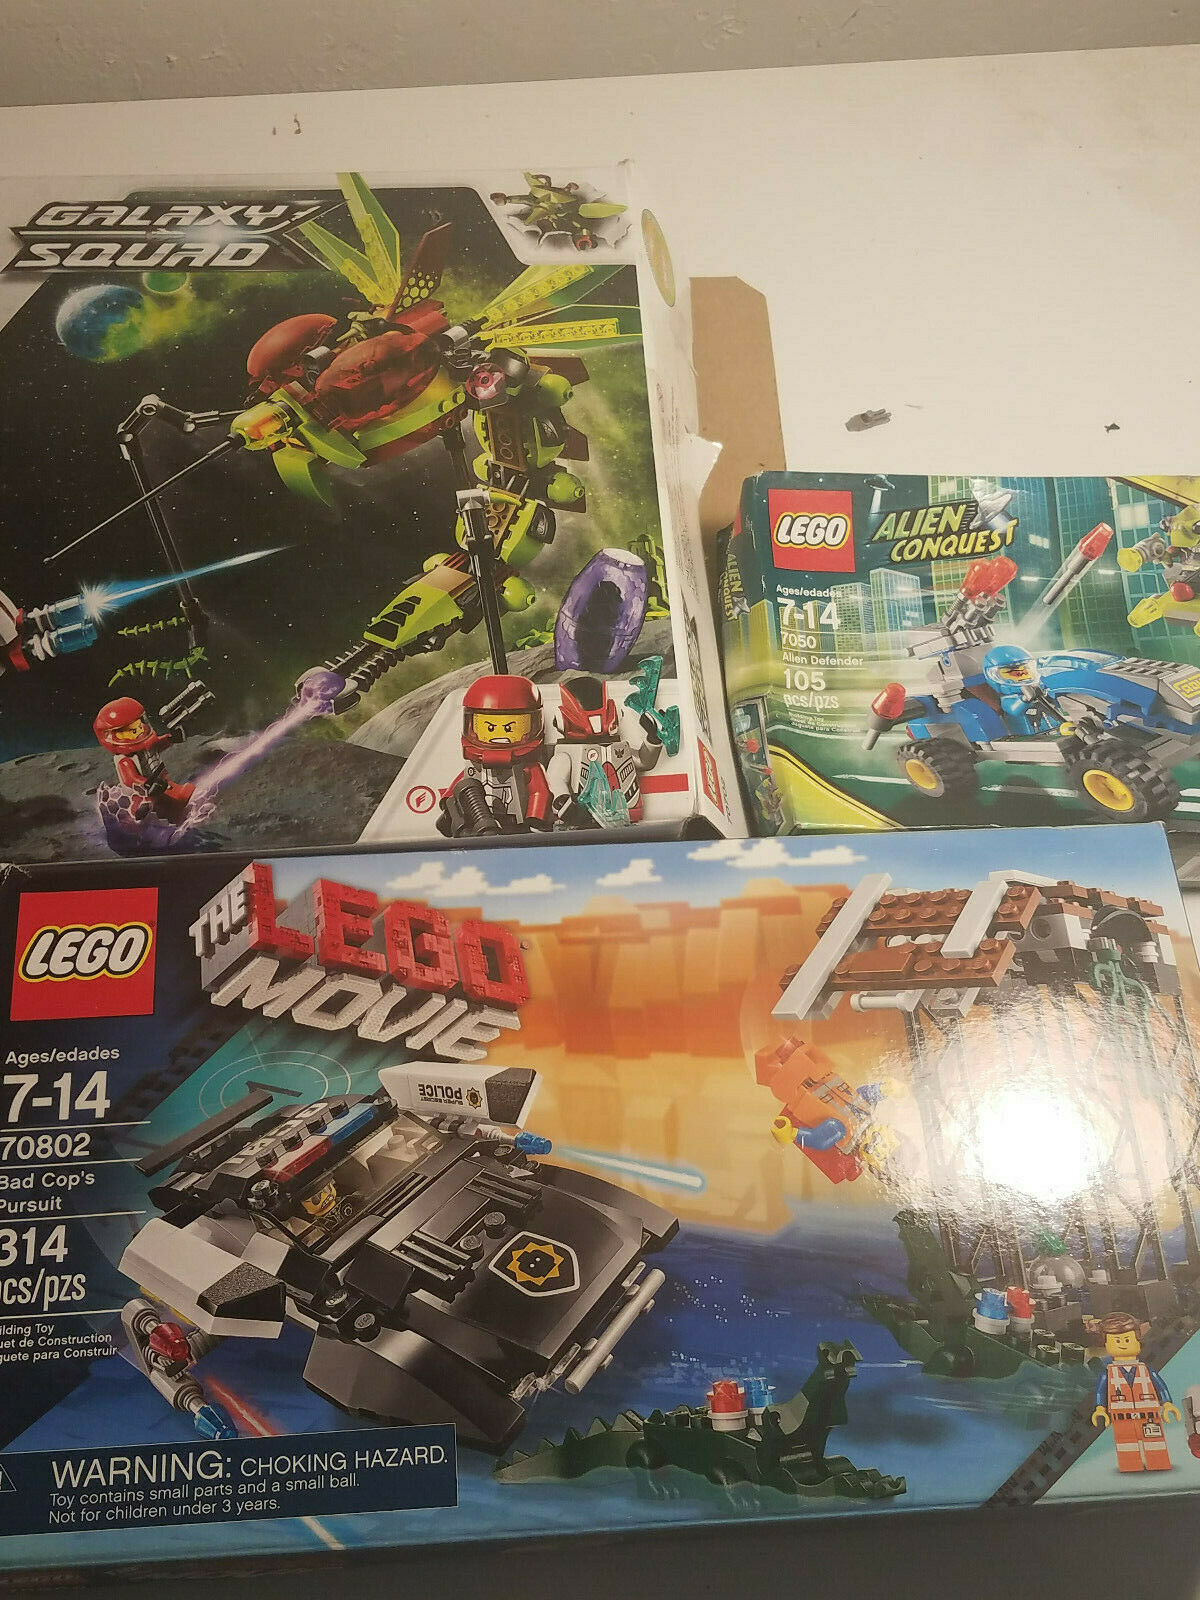 Lego Sets alien conquest 7050 Galaxy Squad 70702 Lego movie bad cop 70802